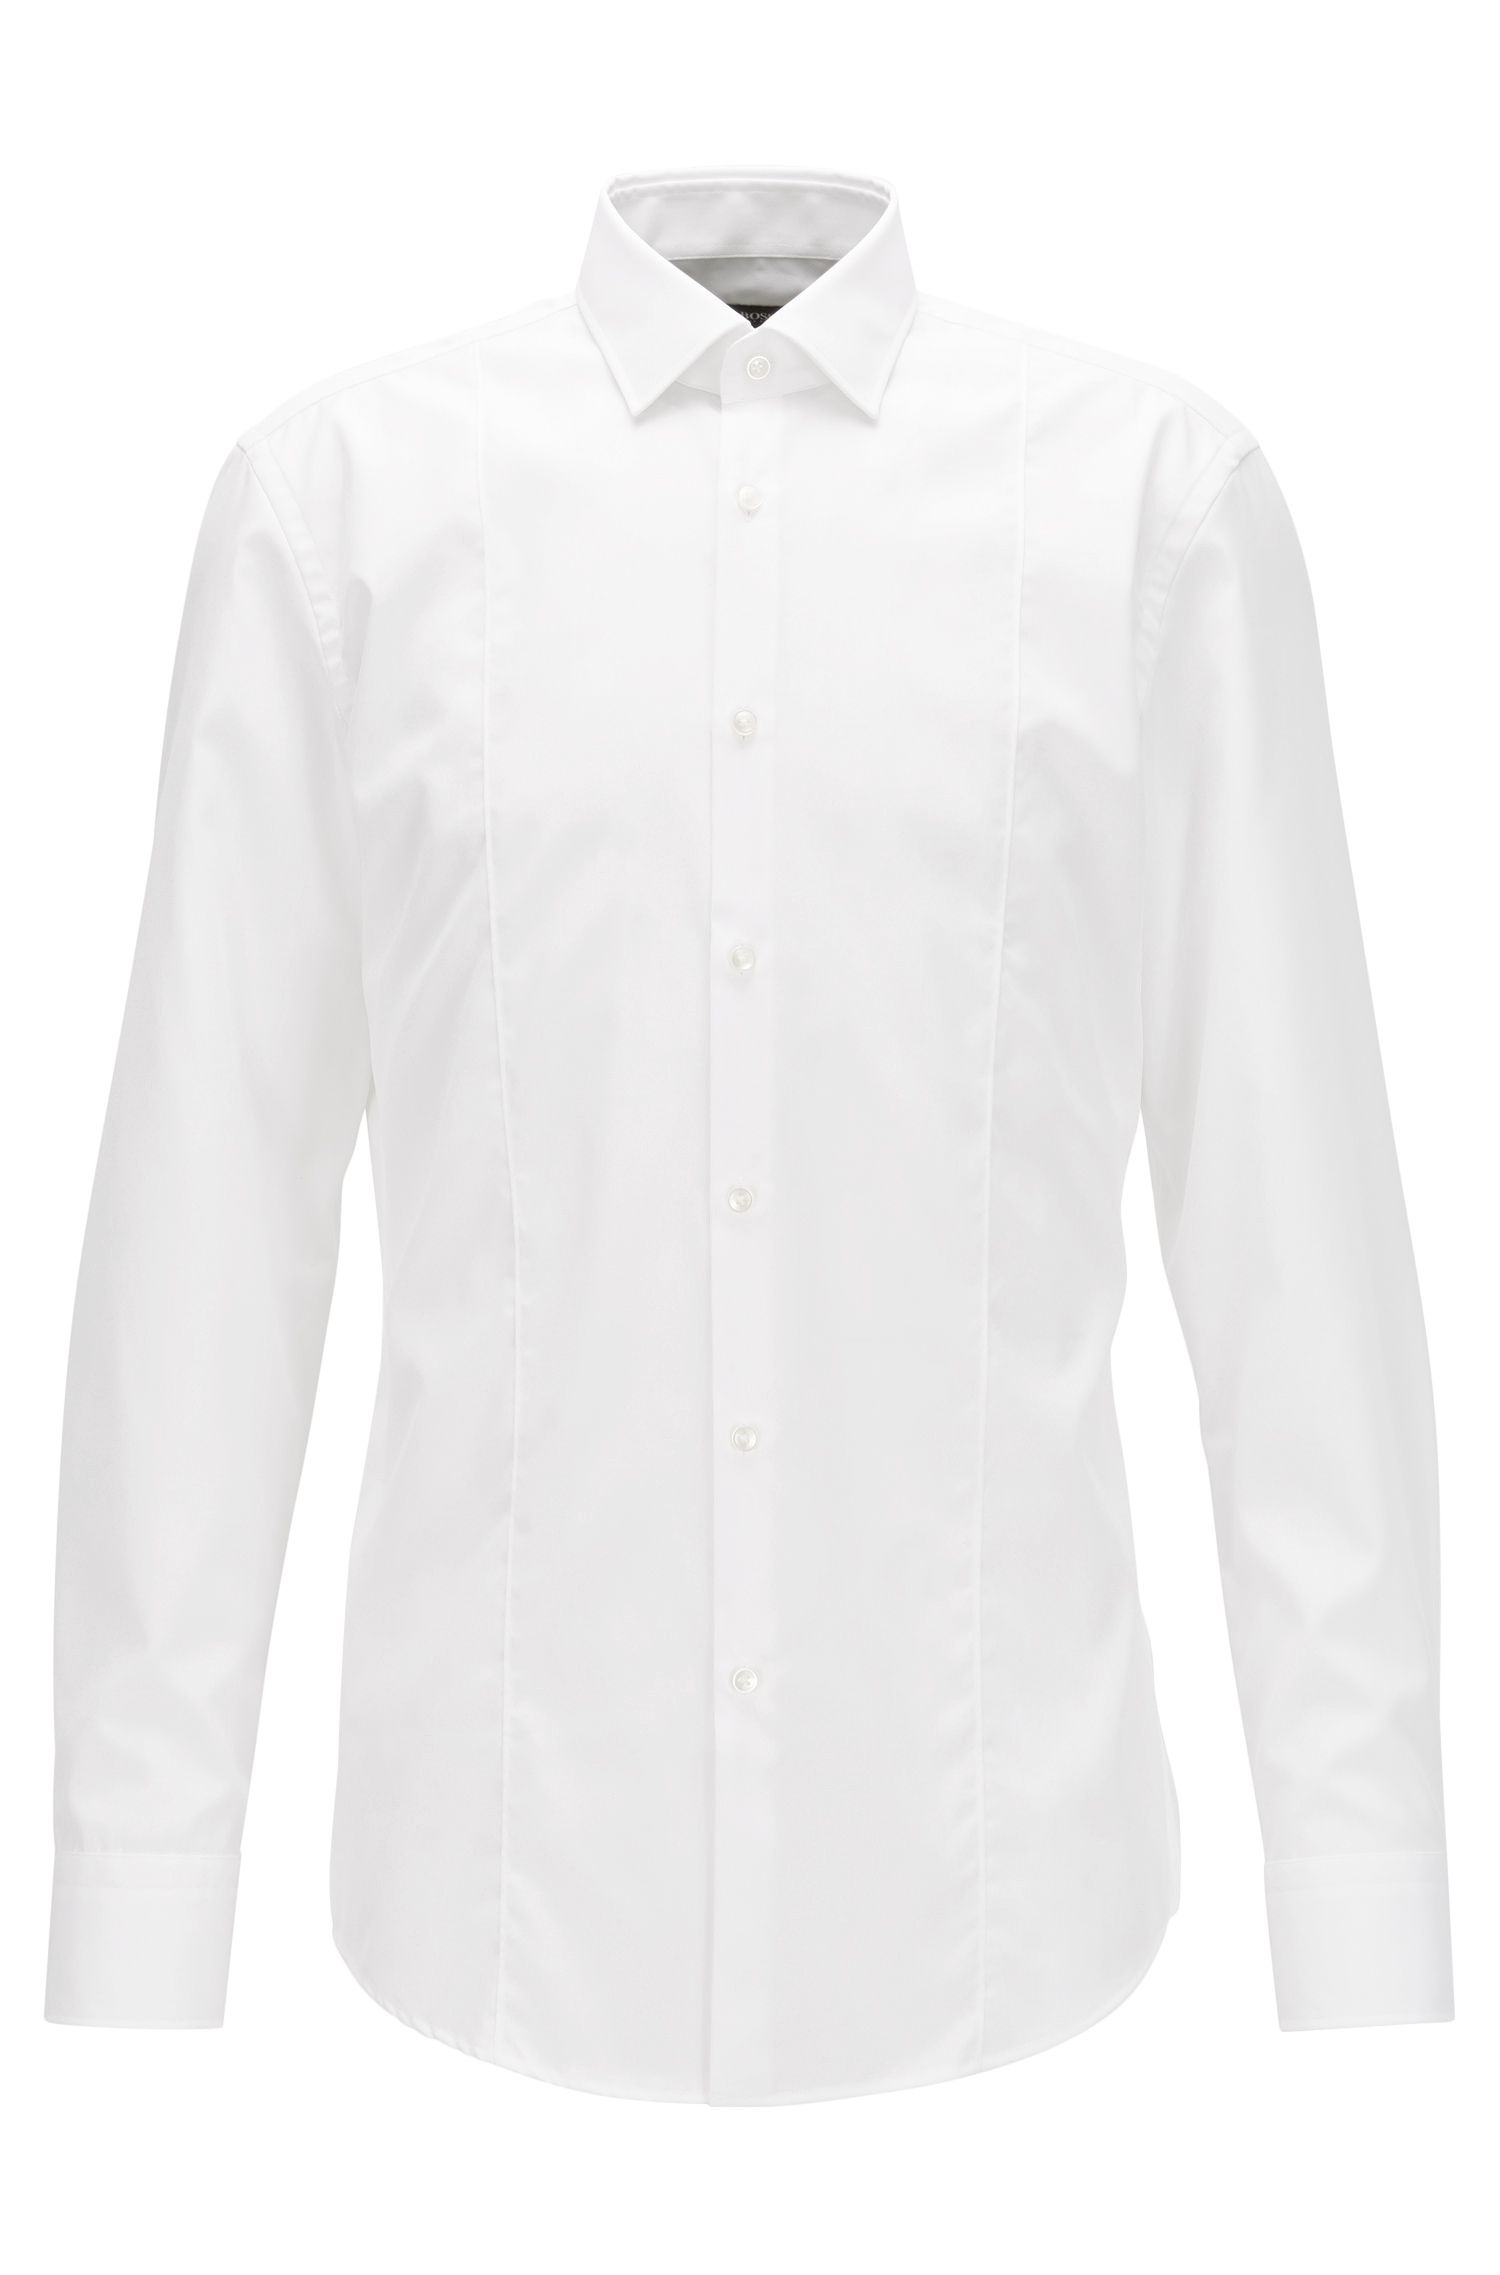 Slim-fit panelled shirt in easy-iron cotton